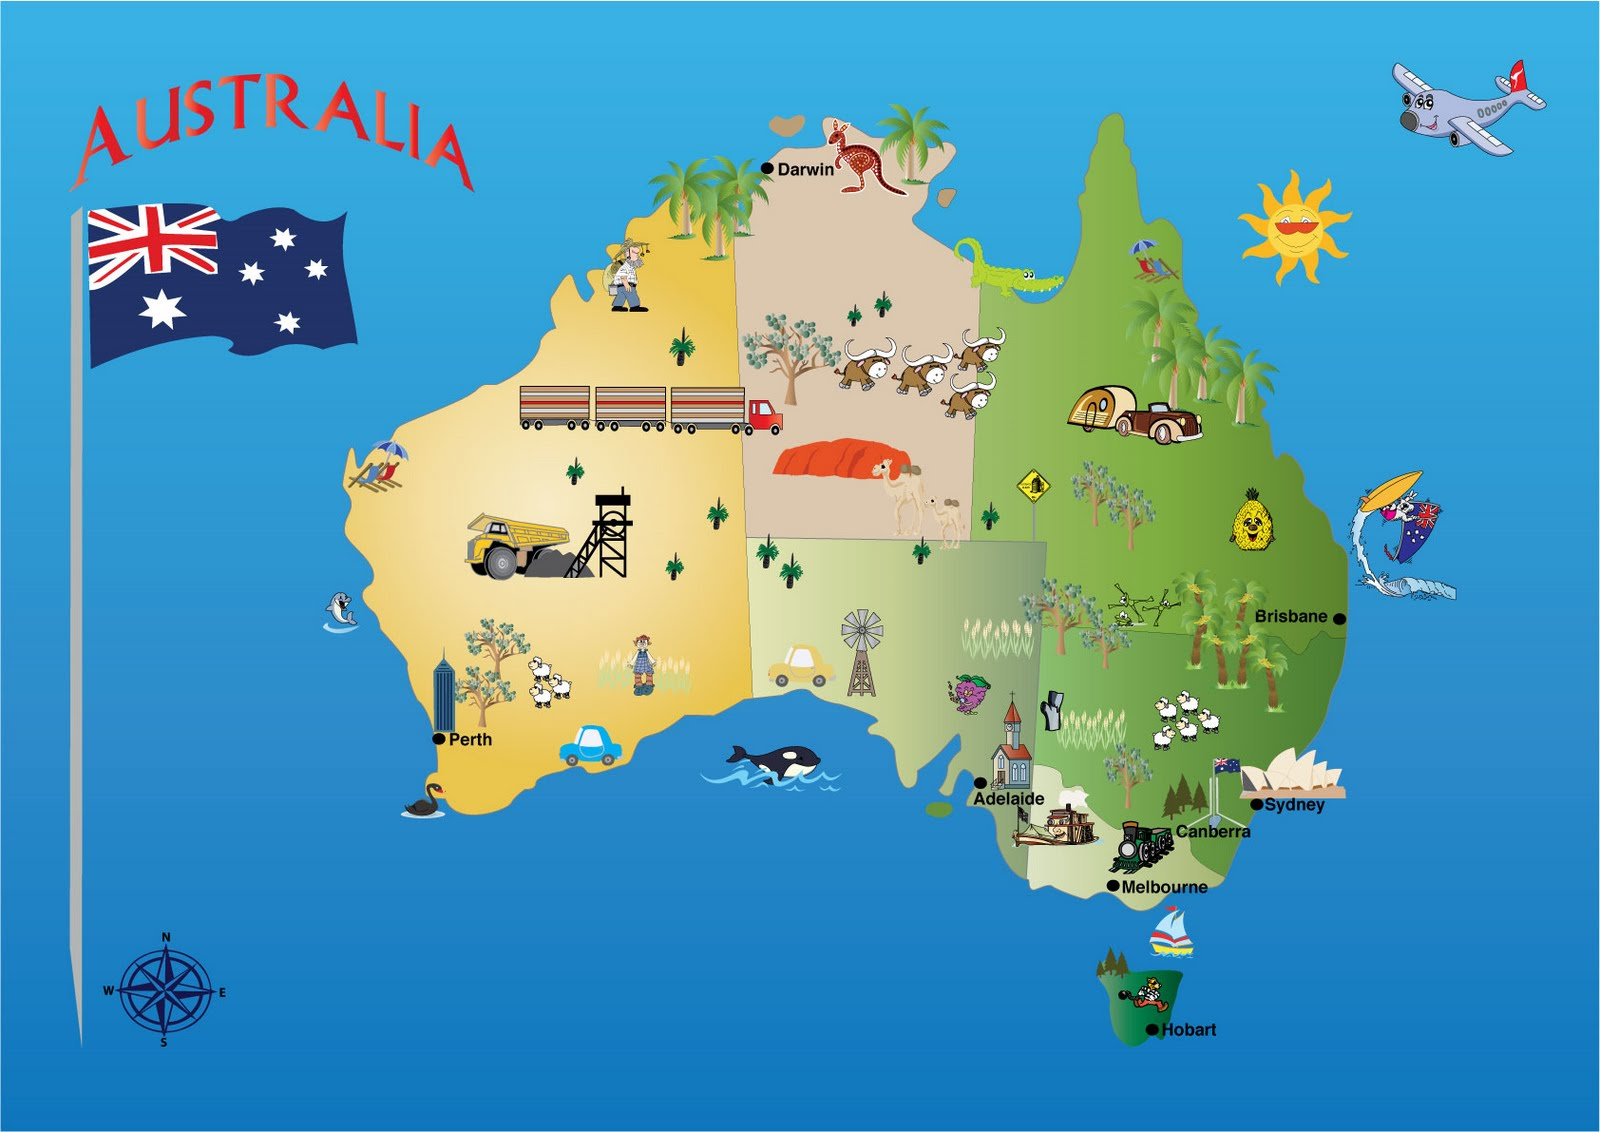 Map Of Australia Images.Australian Map Flag And Country Facts